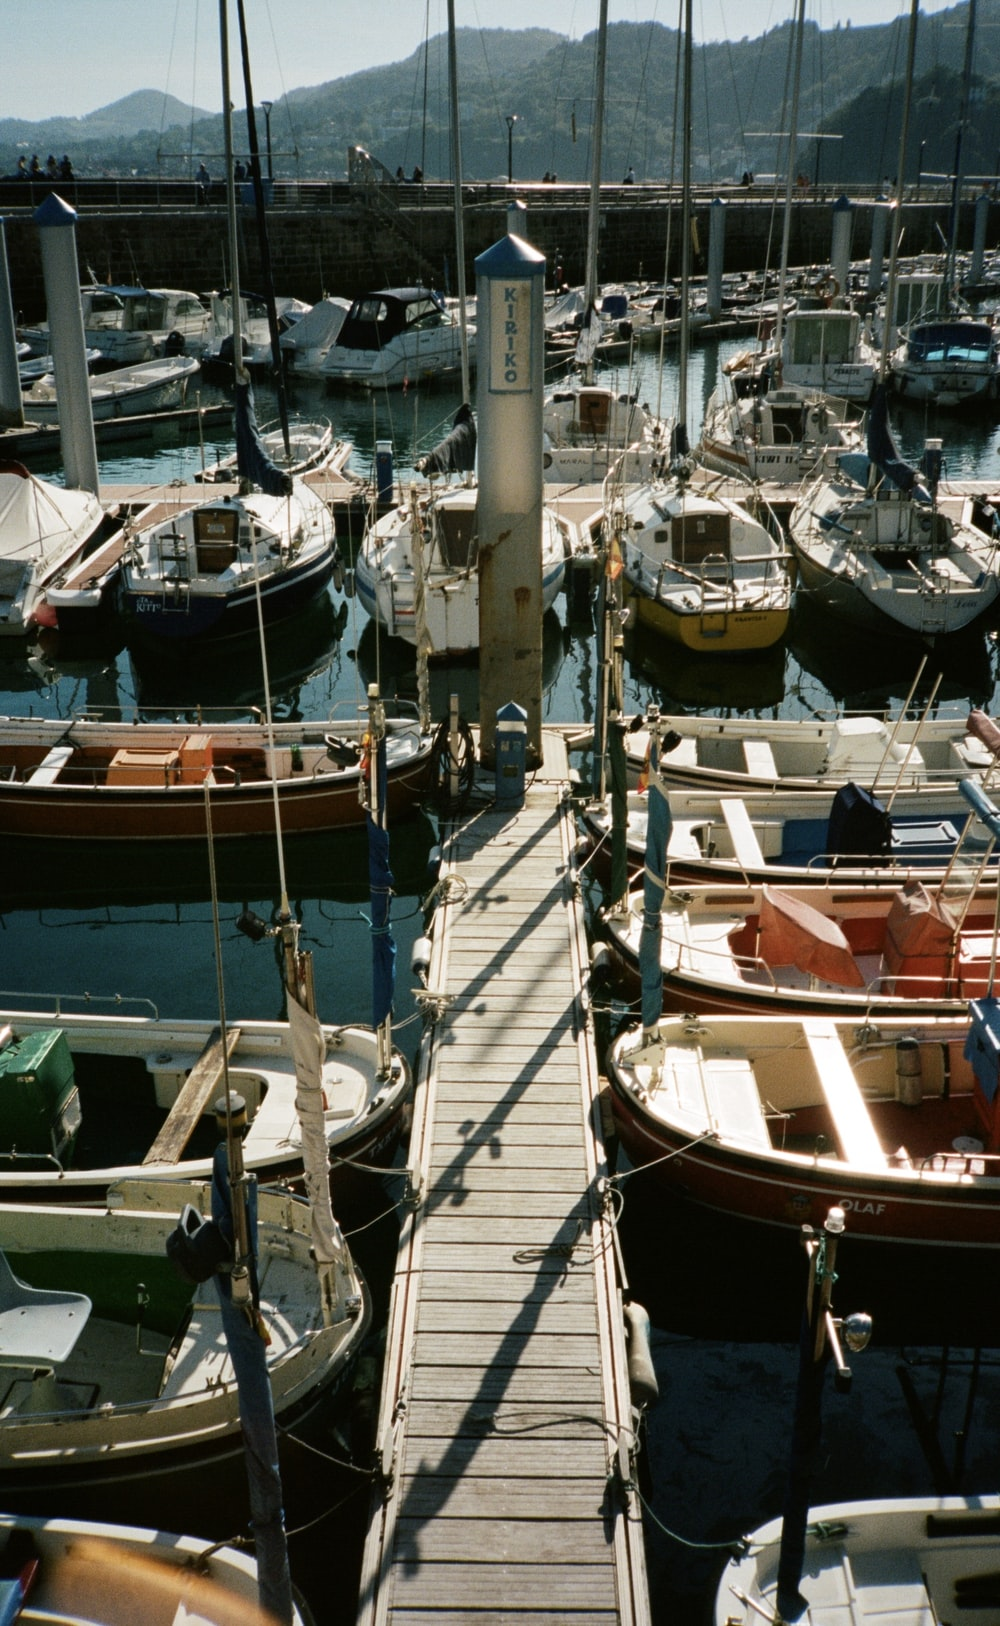 white and brown boat on dock during daytime